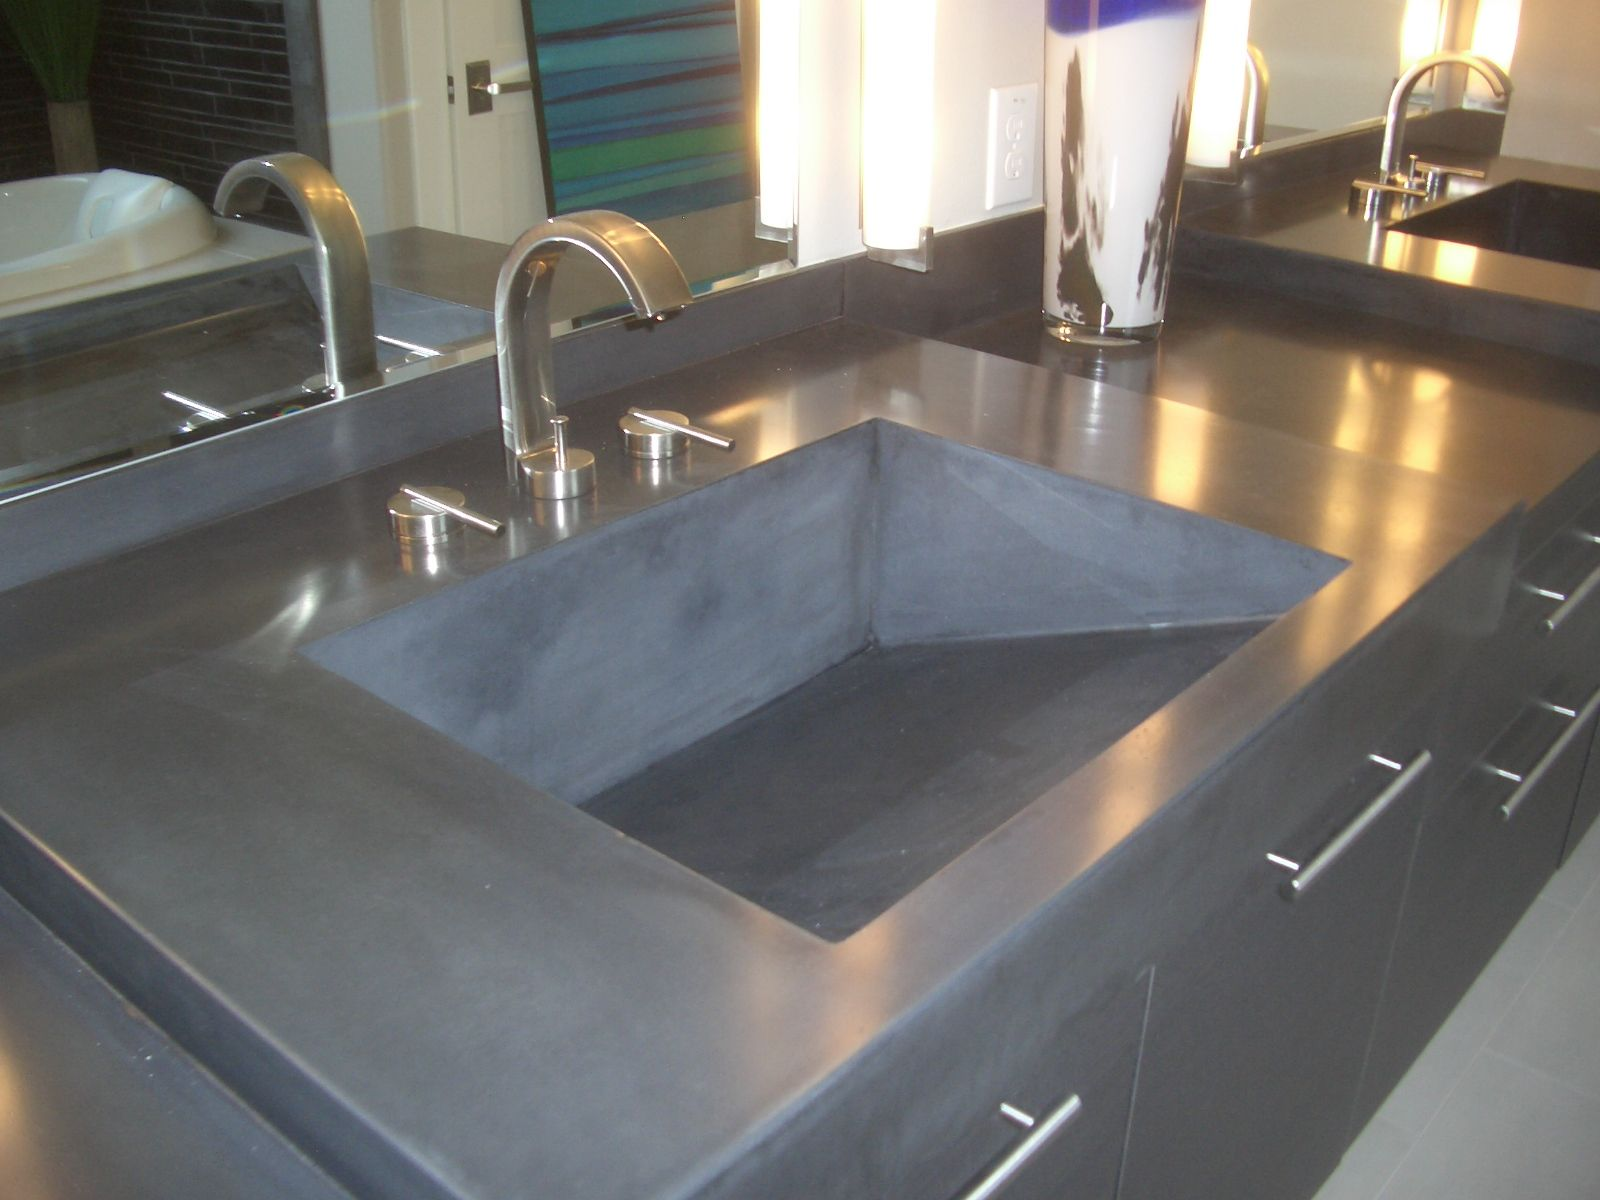 concrete countertop prices kitchen countertops prices Concrete Countertops Prices Bestcountertops